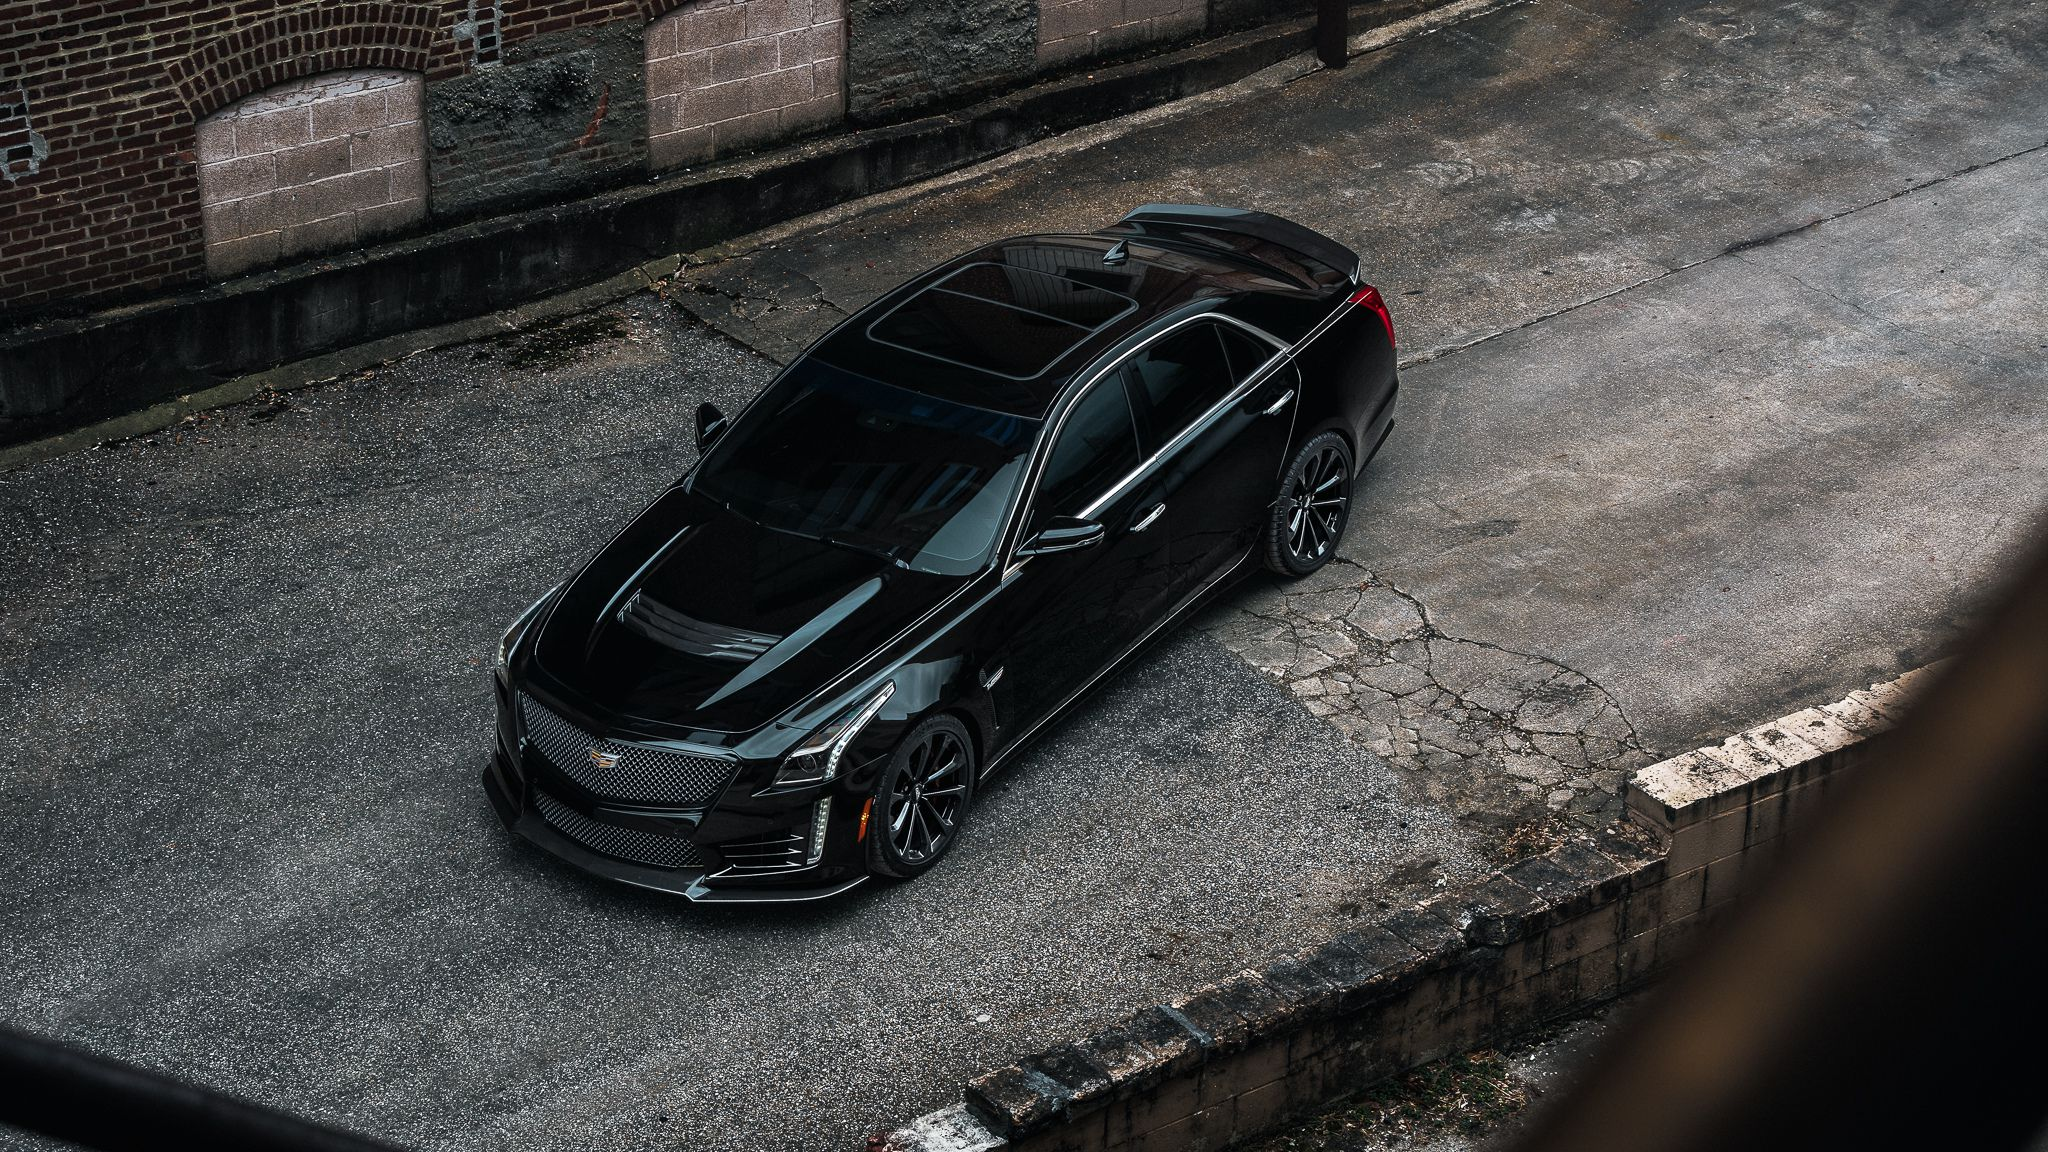 Cadillac CTS-V, luxury sedan